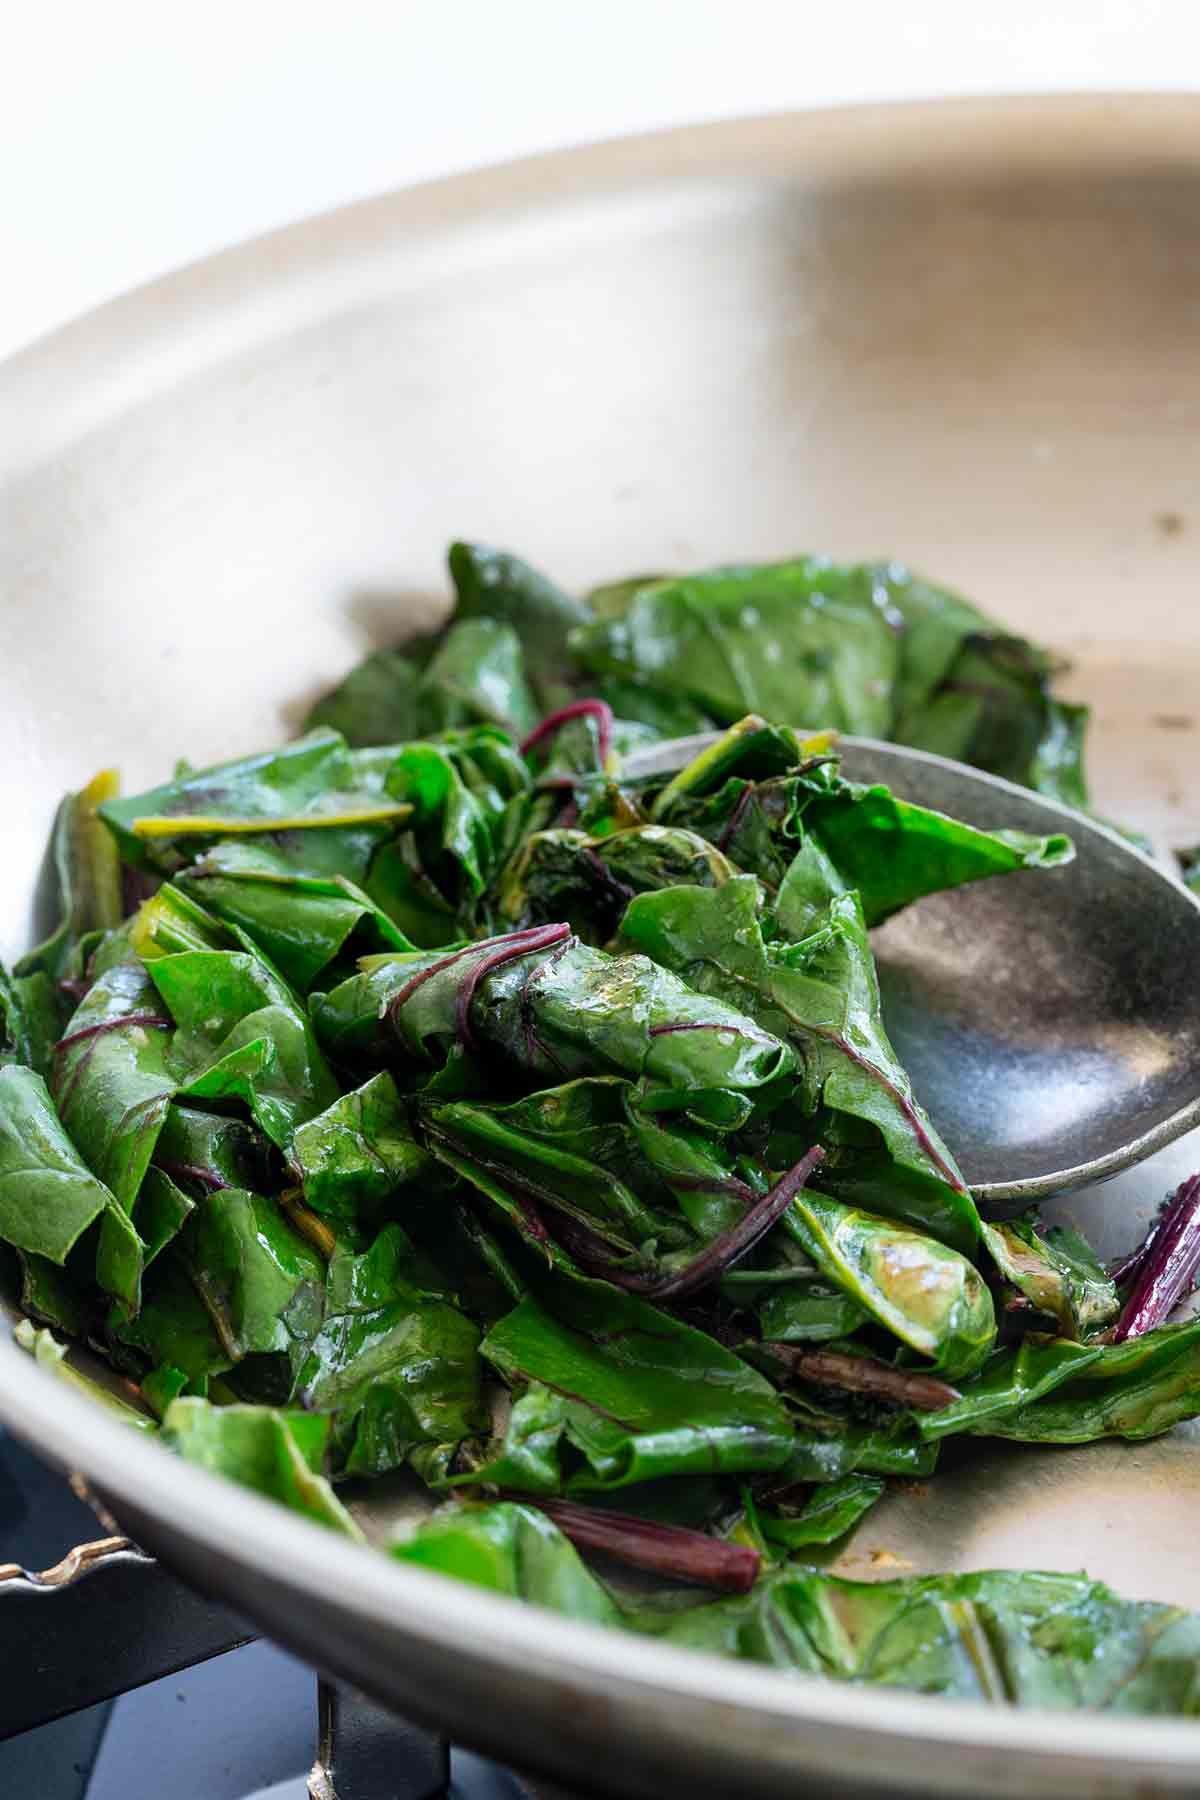 Pan frying beet greens